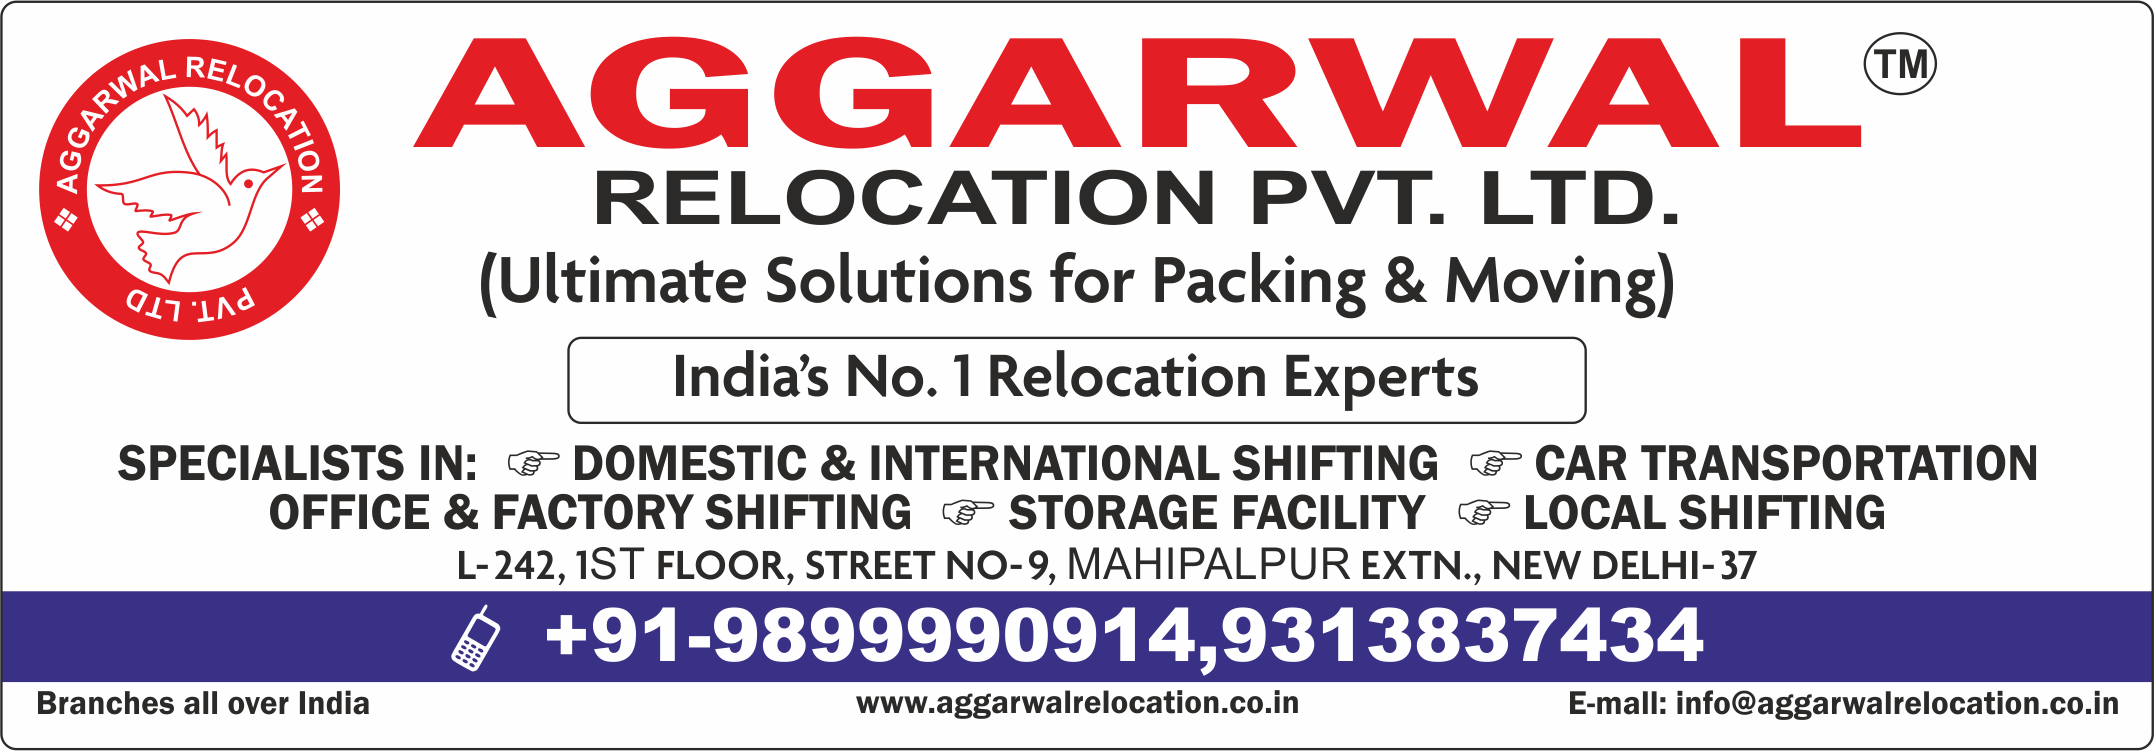 AGGARWAL RELOCATION PVT. LTD.